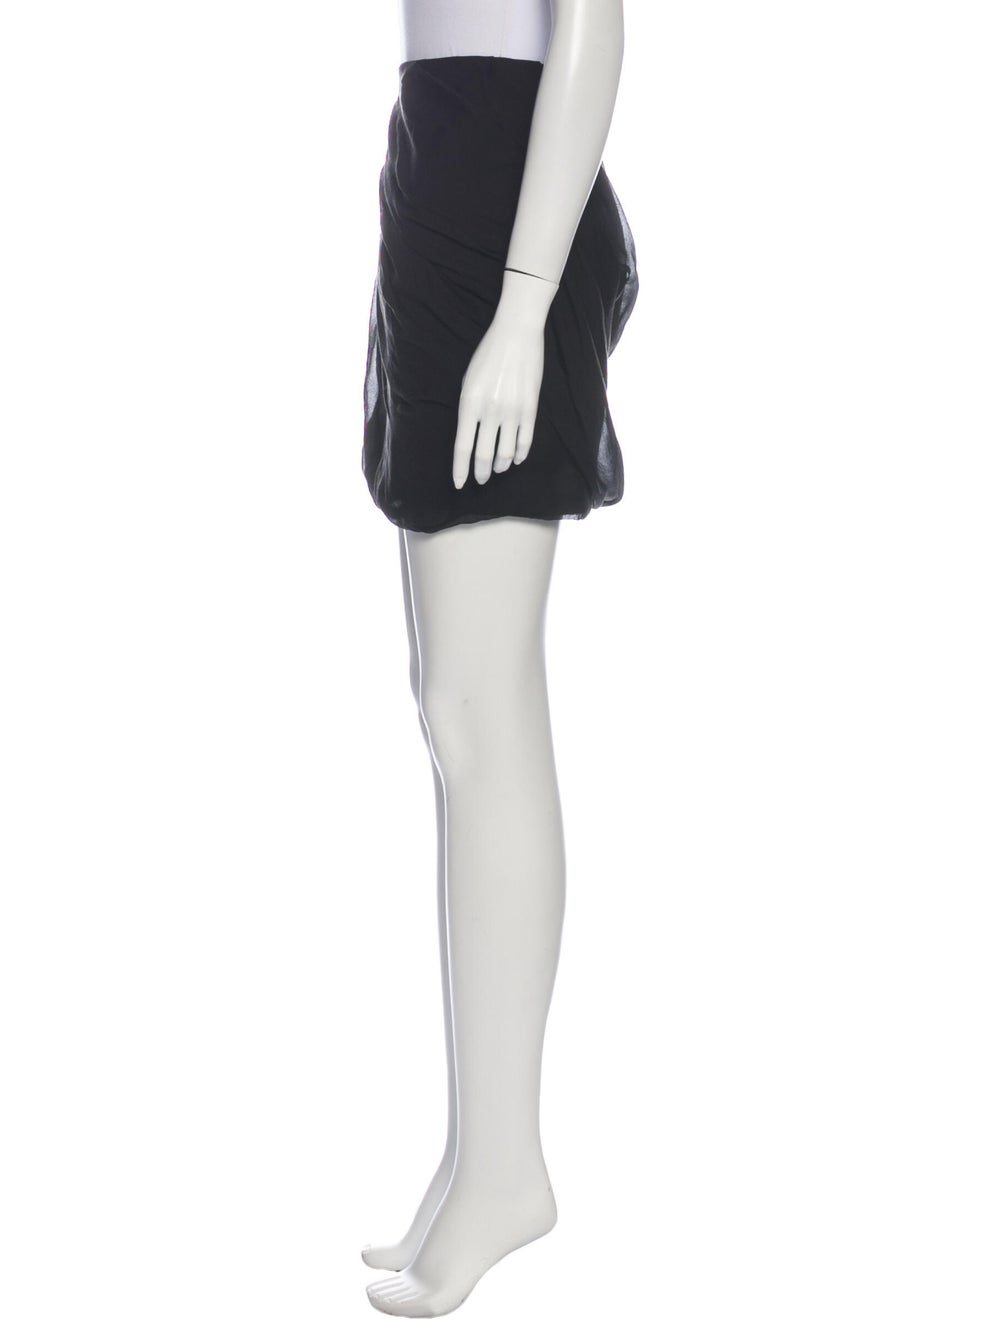 Diane von Furstenberg Silk Mini Skirt Black - image 2